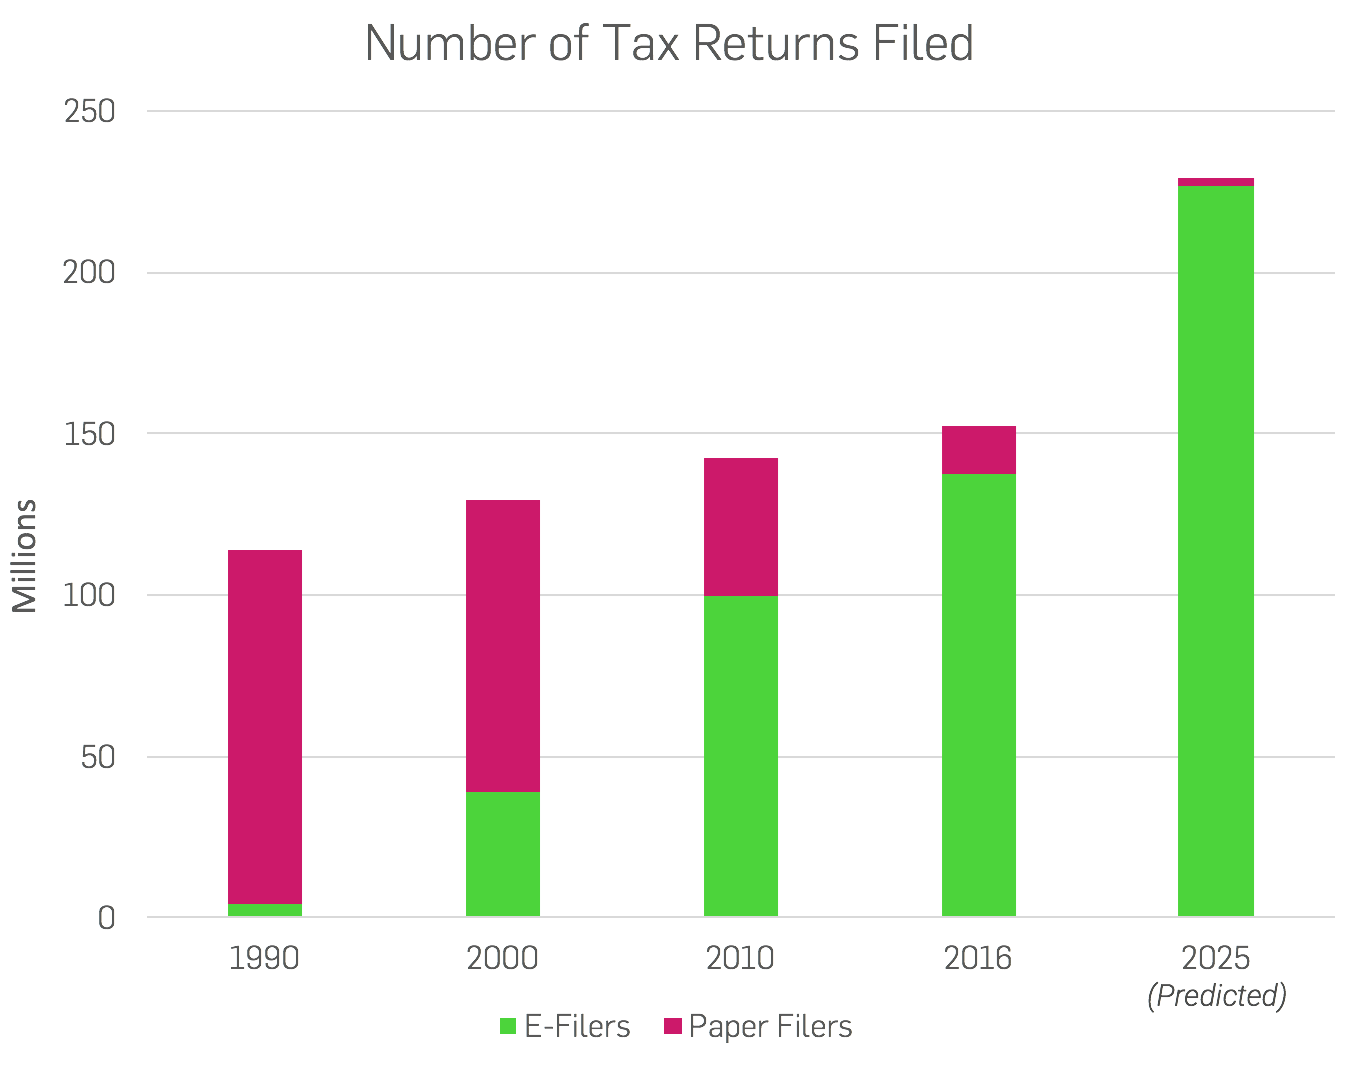 Bar graph showing percentage of tax e-filers and paper filers